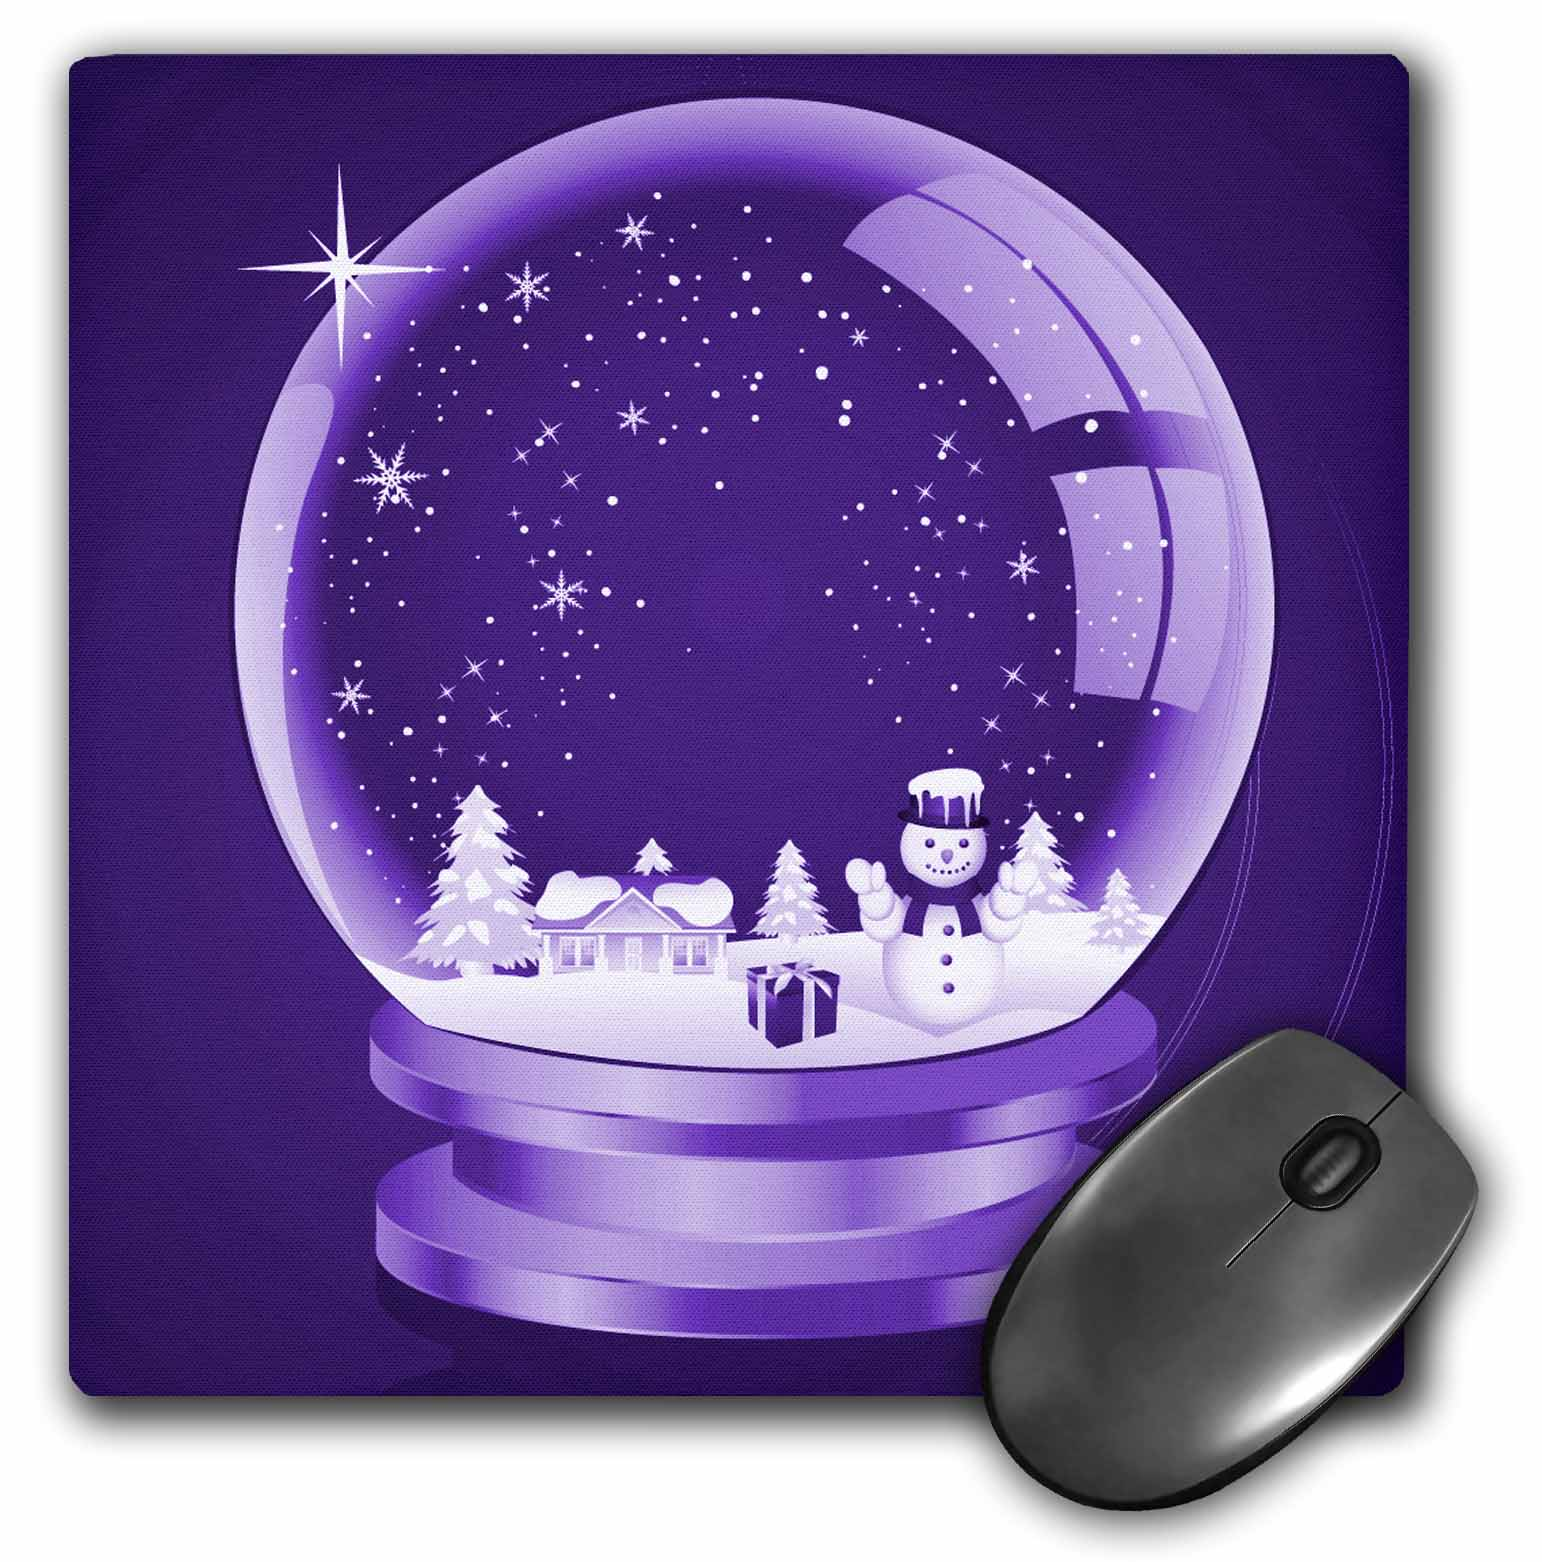 3dRose A Christmas Snow Globe Illustration On A Purple Background, Mouse Pad, 8 by 8 inches